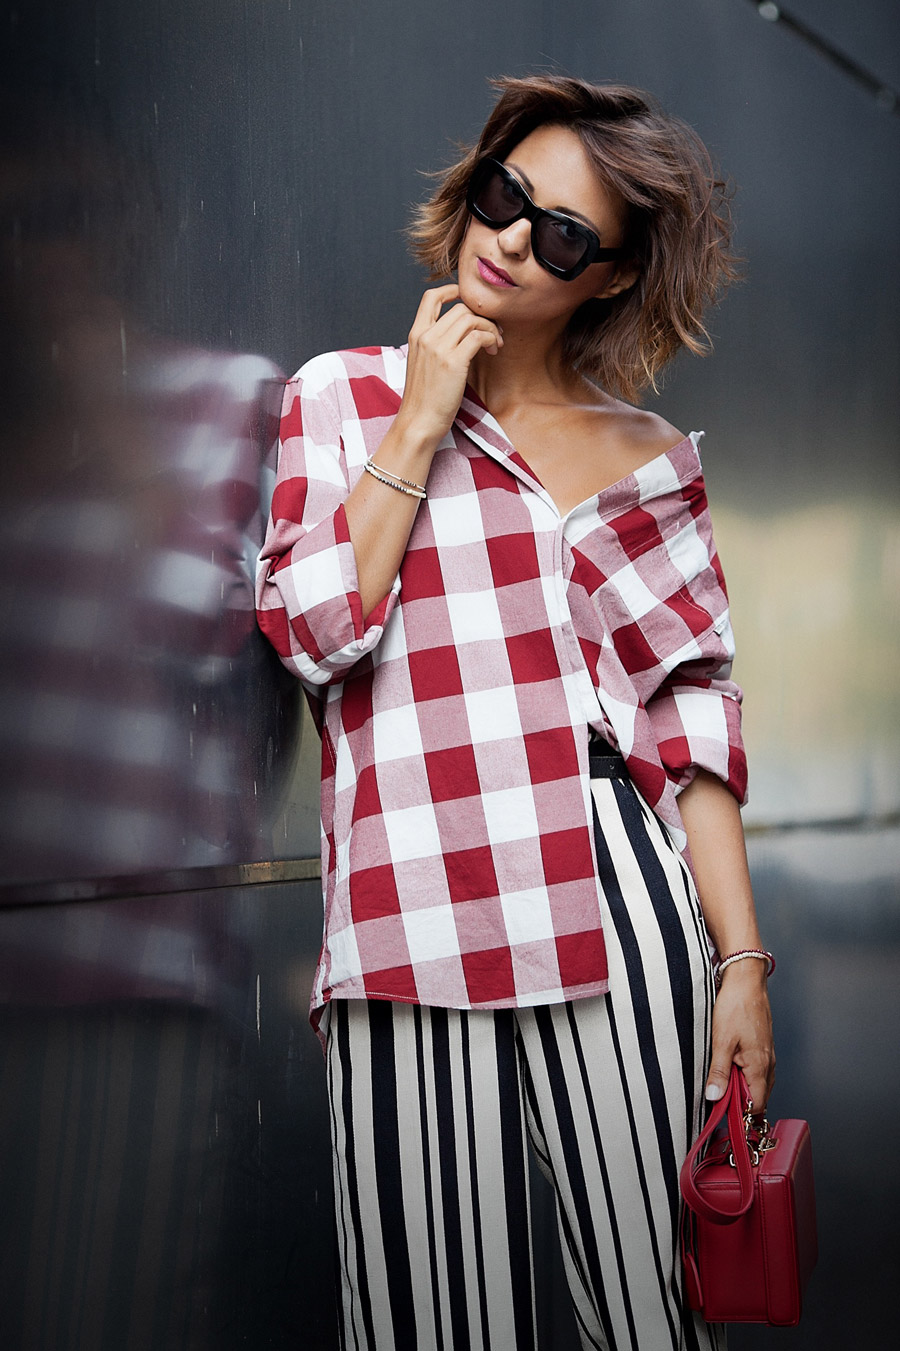 red gingham shirt, striped culottes, mix of prints outfit,